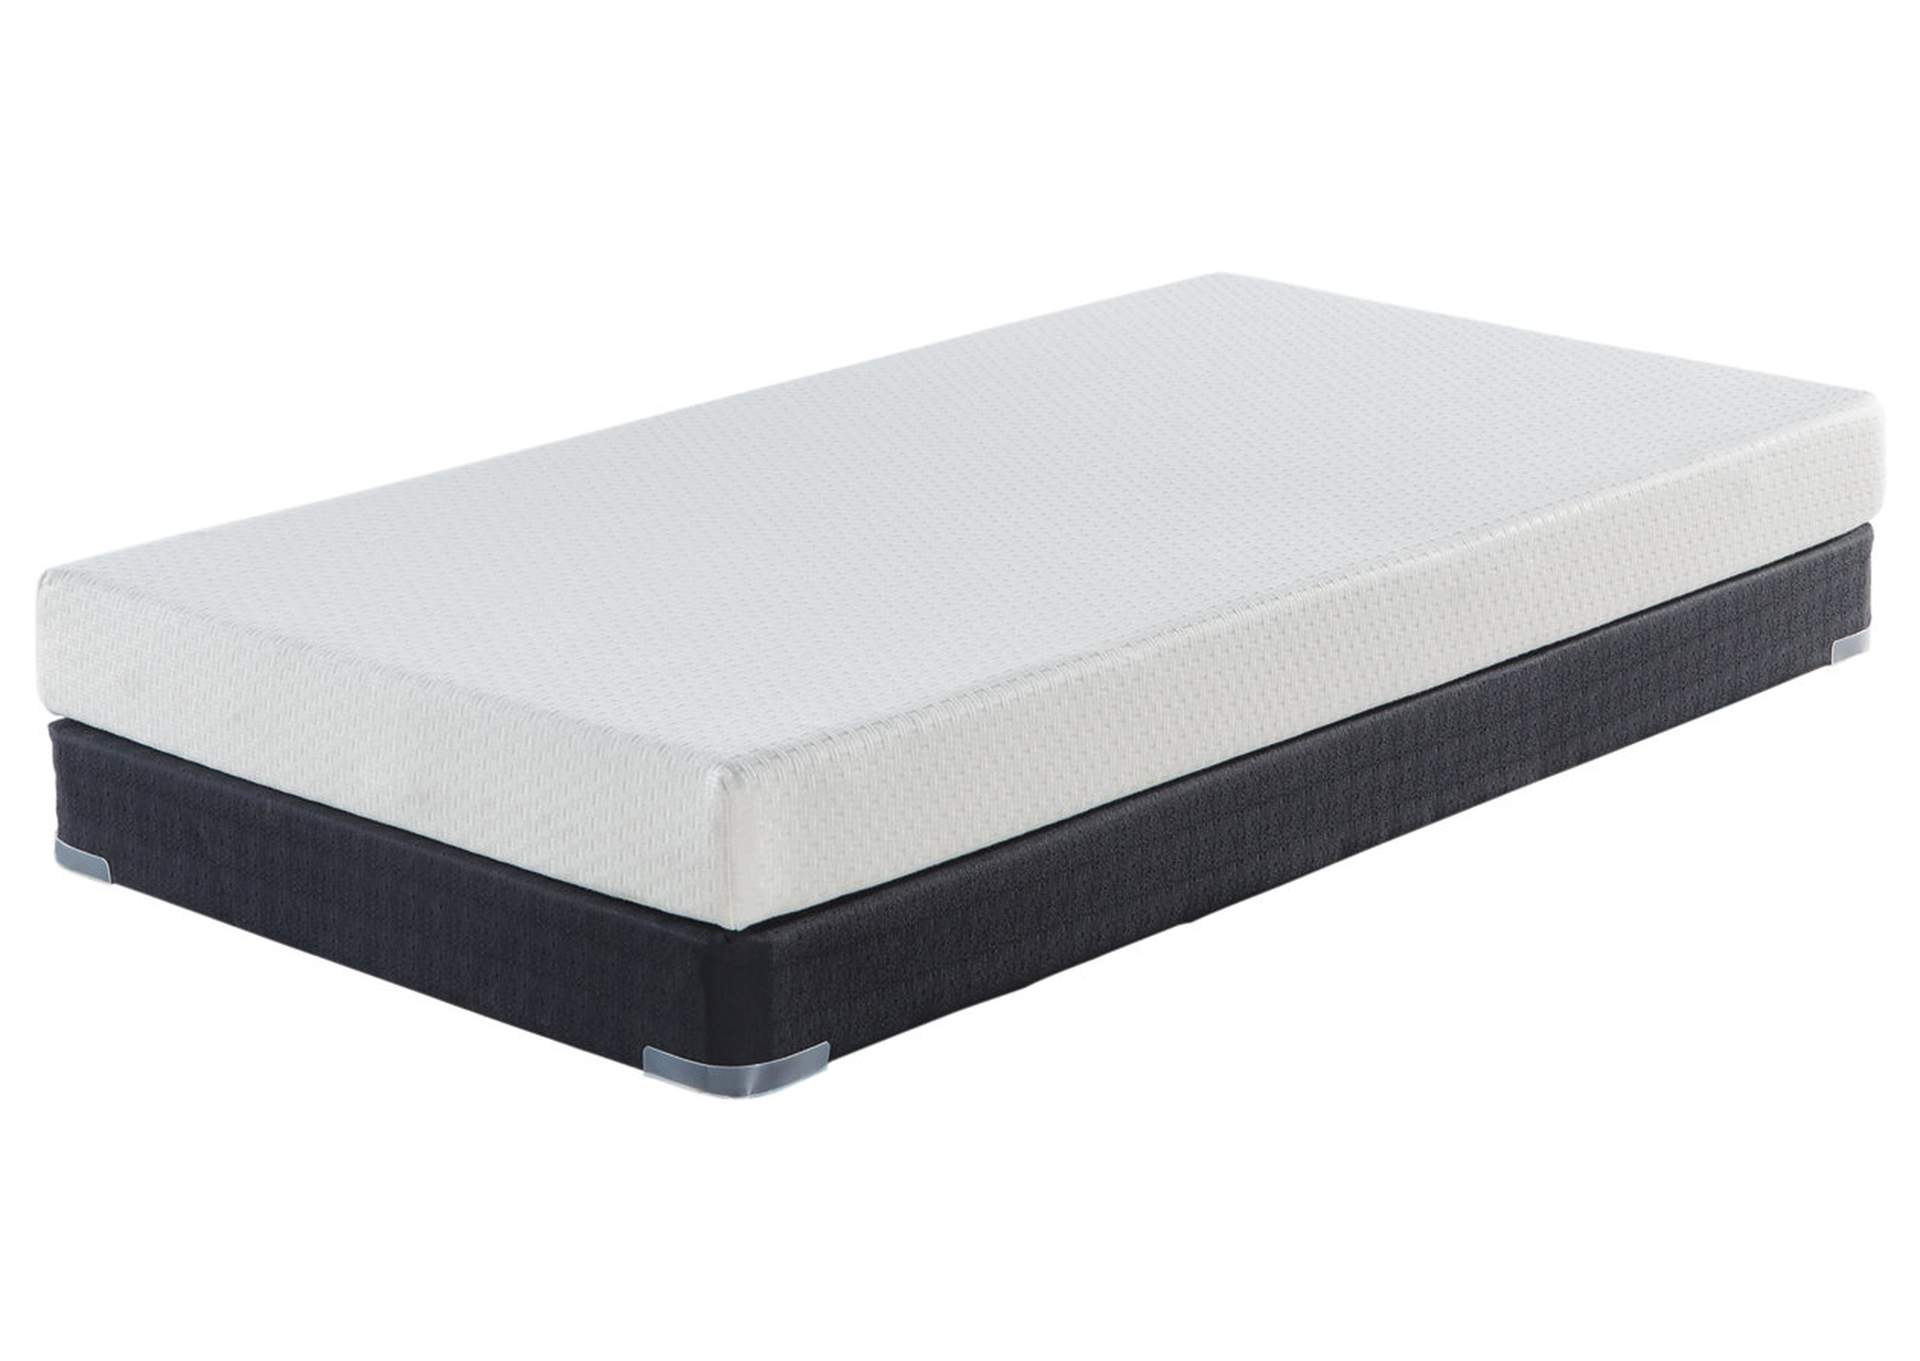 6 Inch Chime Express Queen Memory Foam Mattress,Sierra Sleep by Ashley